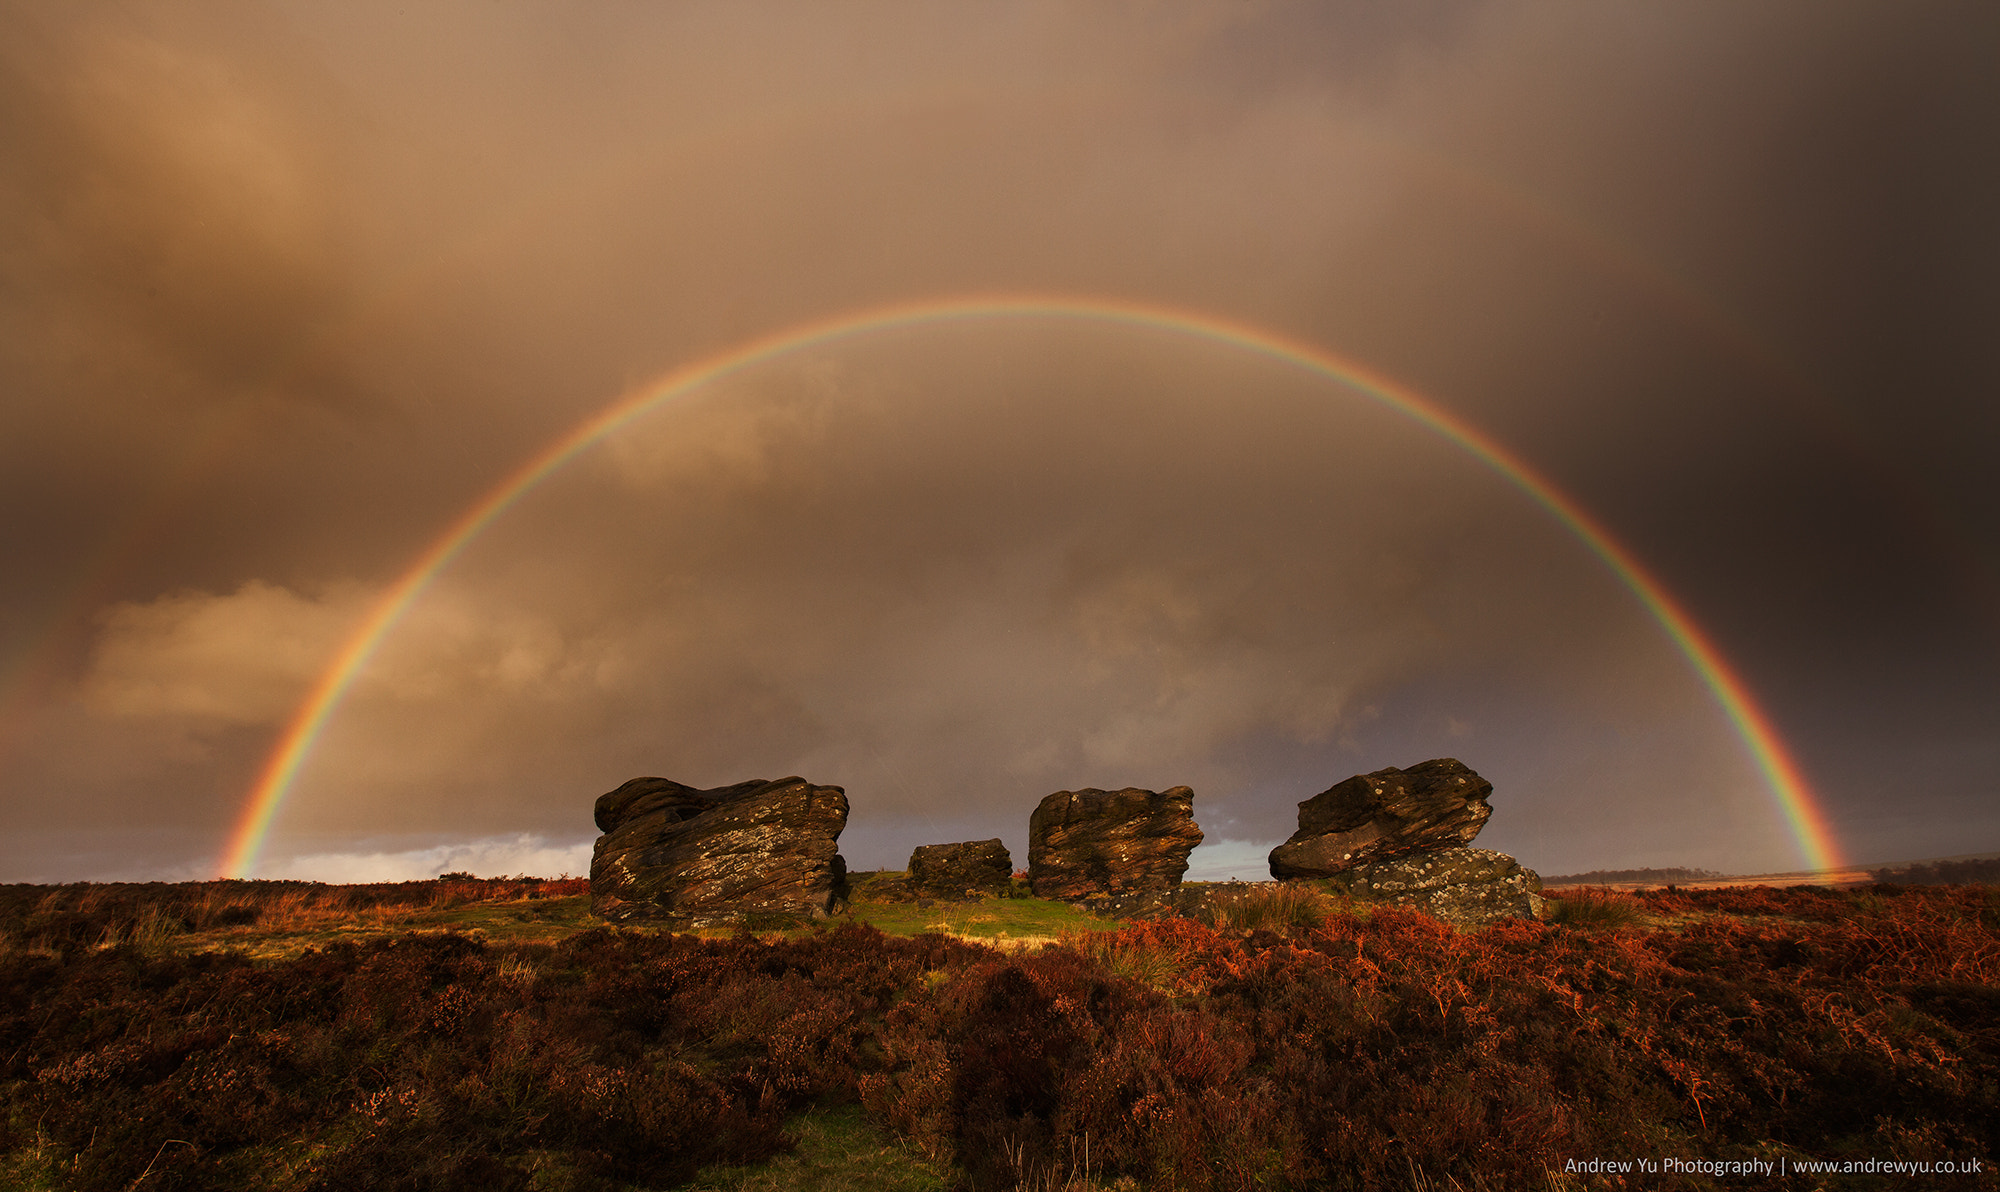 Photograph Rainbow over the Three Ships, Birchen Edge by Andrew Yu on 500px